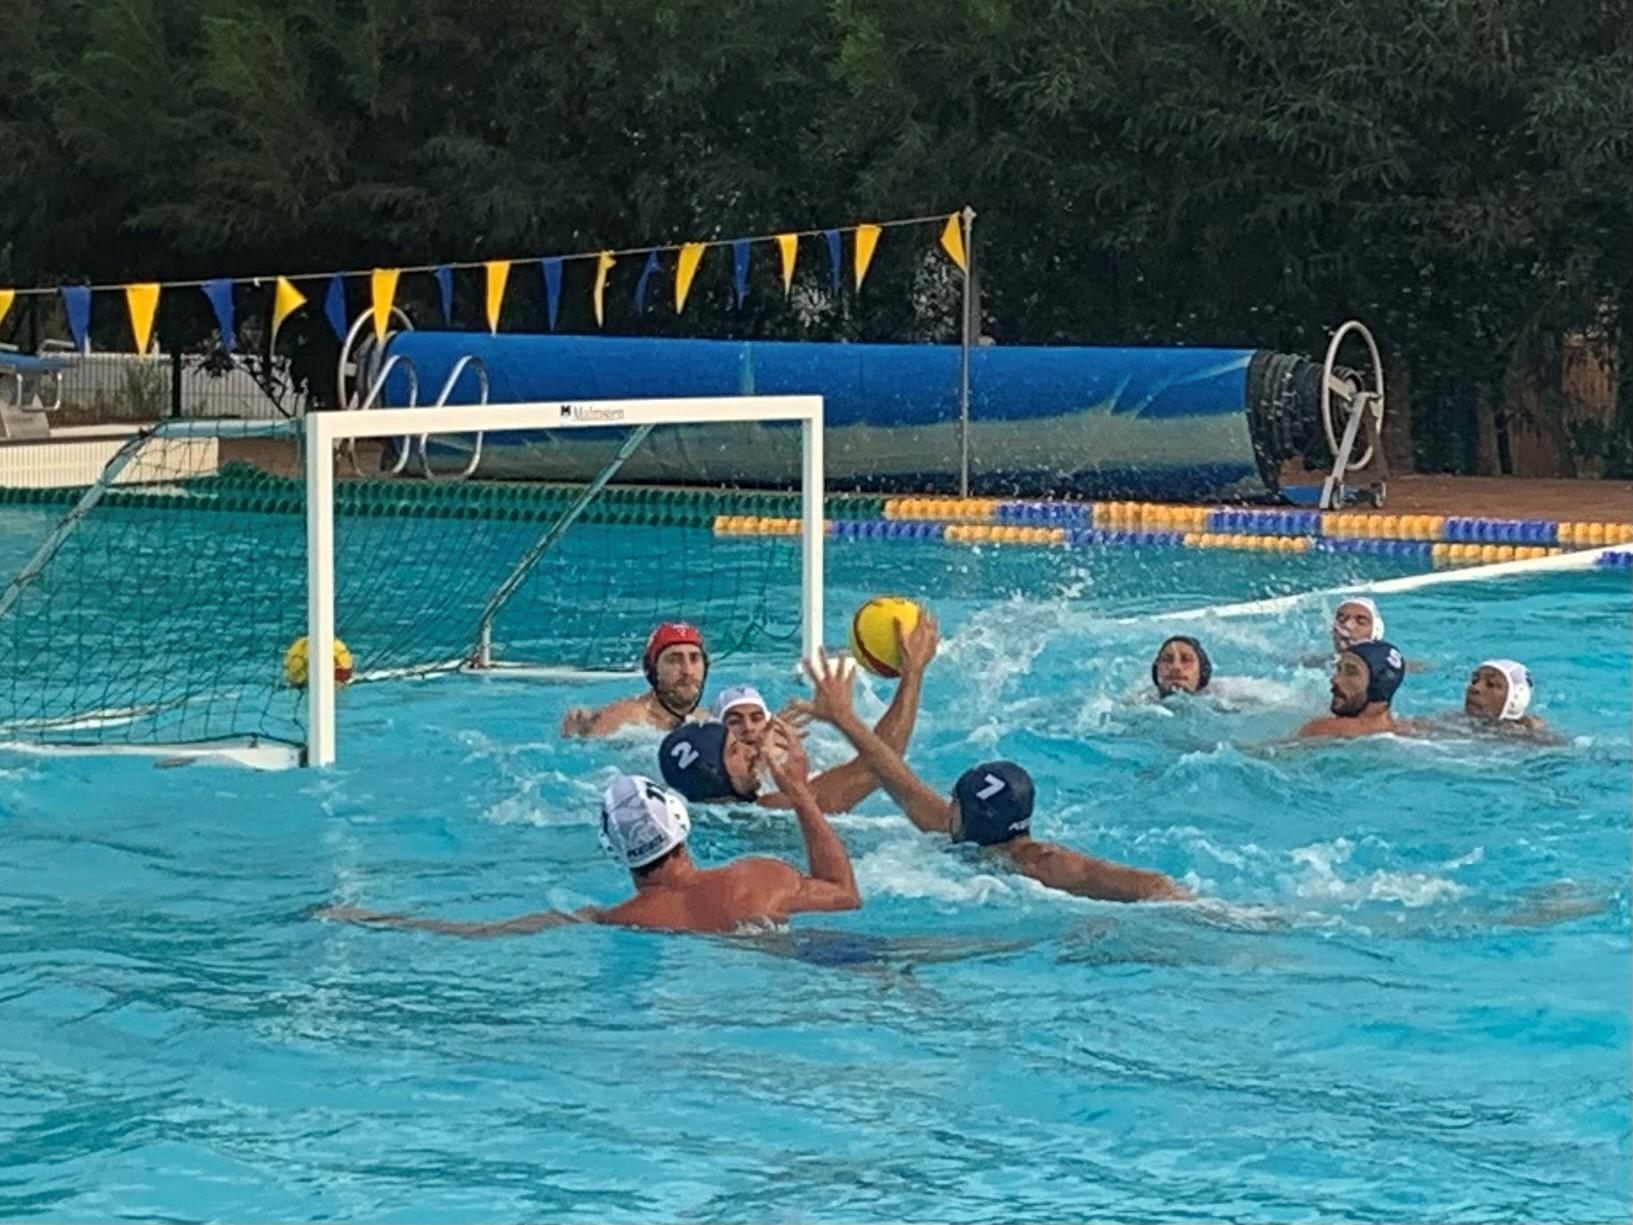 The Marseille waterpolo team in action.